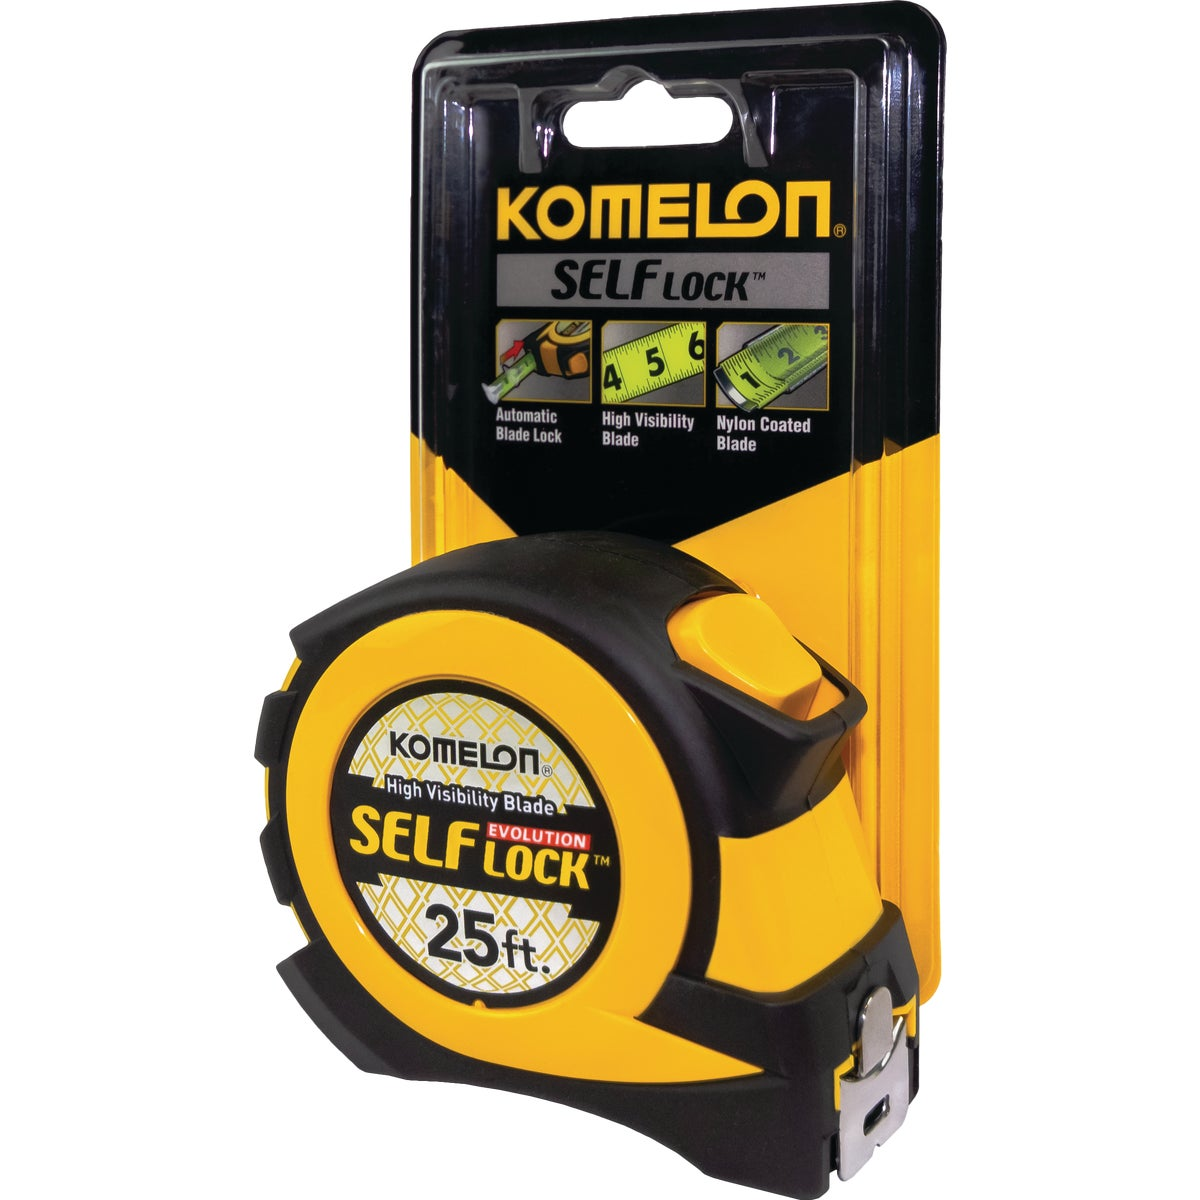 25' SELF-LOCK TAPE RULE - EV2825 by Komelon Usa Corp